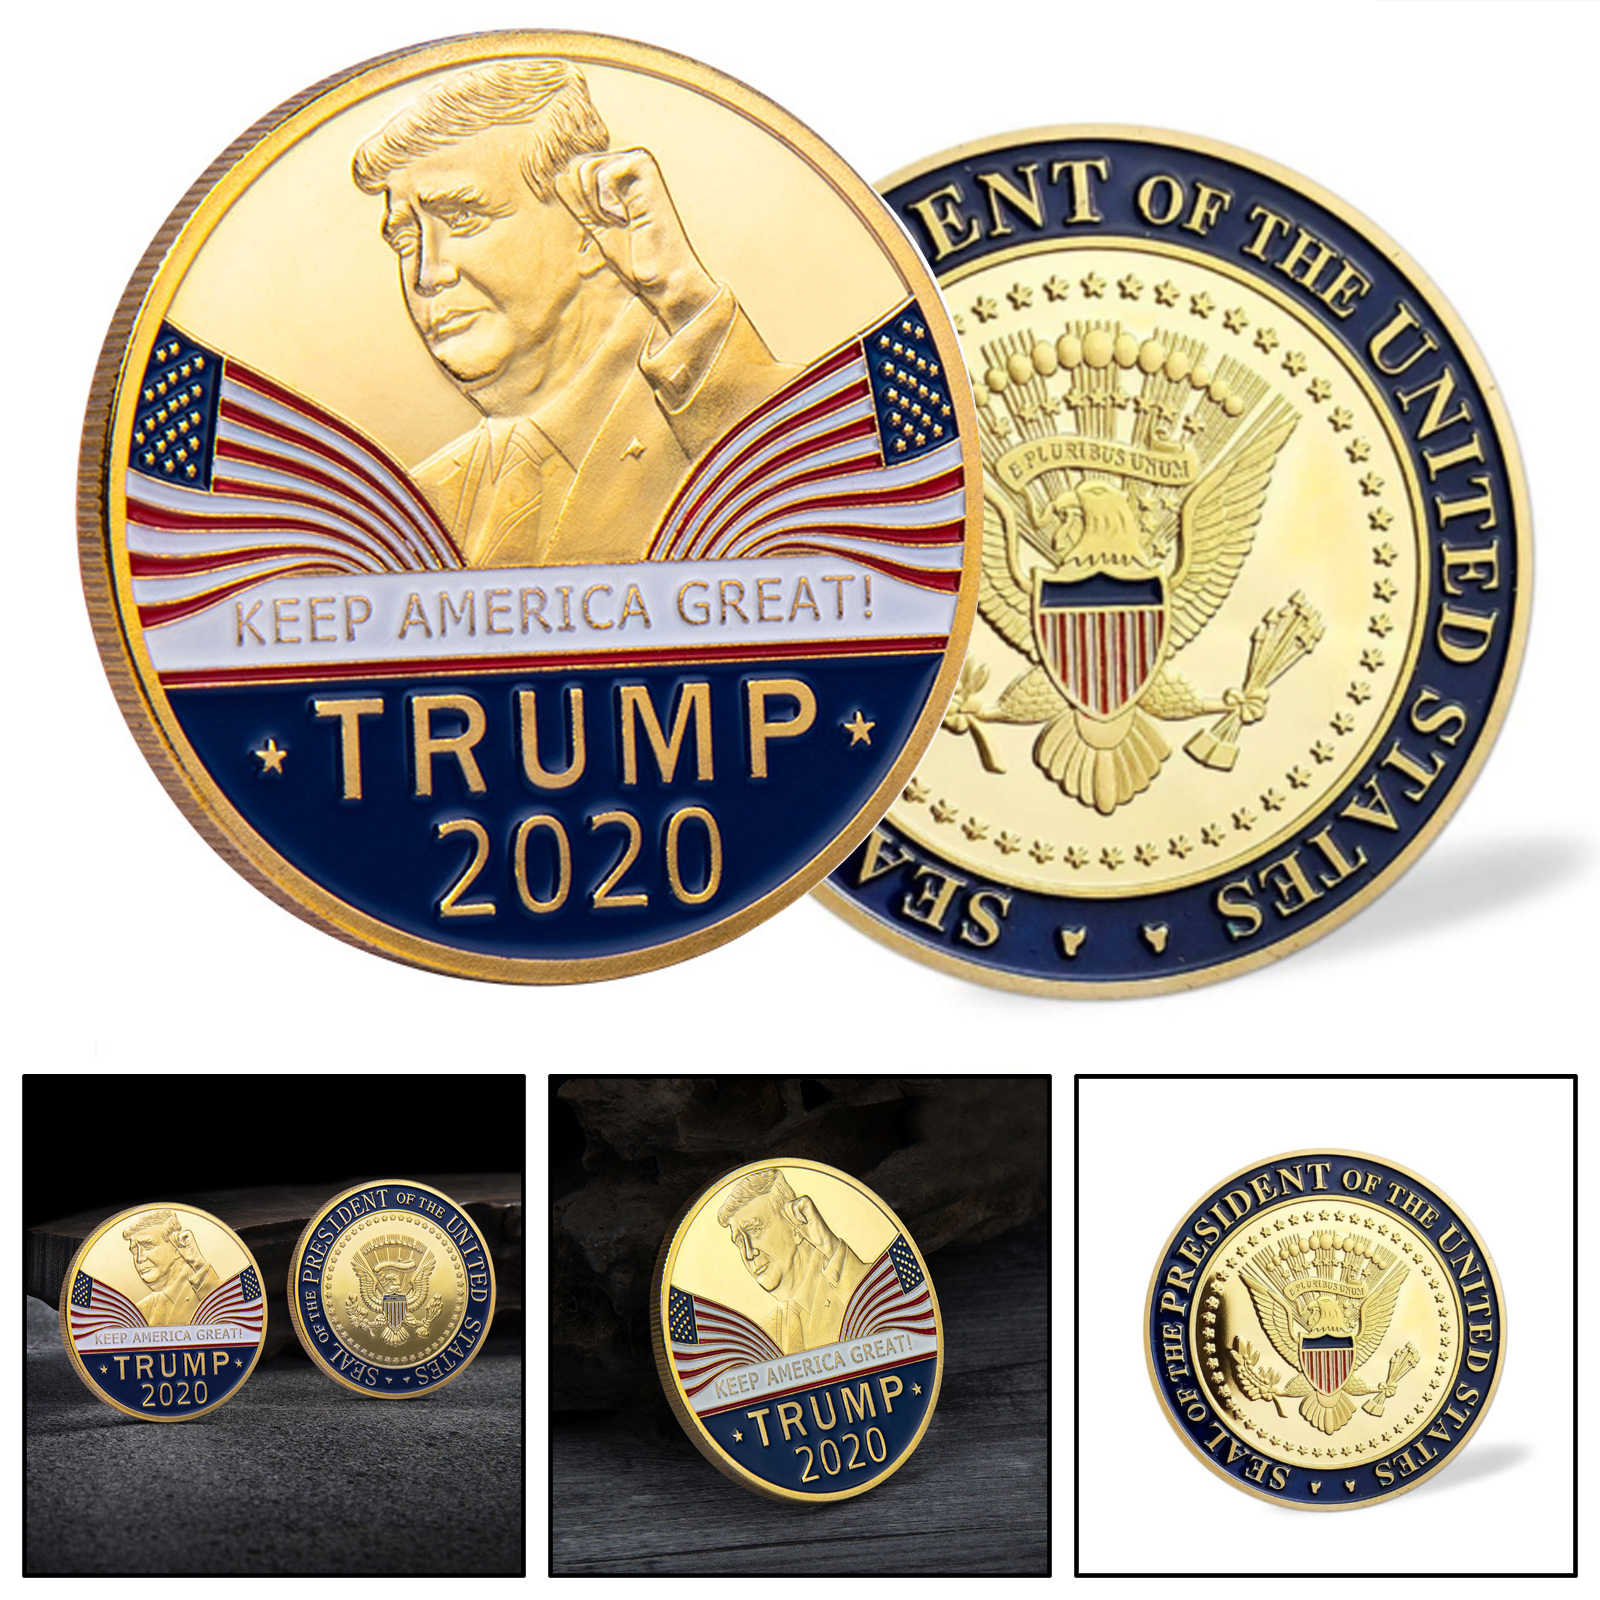 Areyourshop President Donald Trump 2020 Houden Amerika Grote Commemorative Uitdaging Eagle Coin 40 Mm